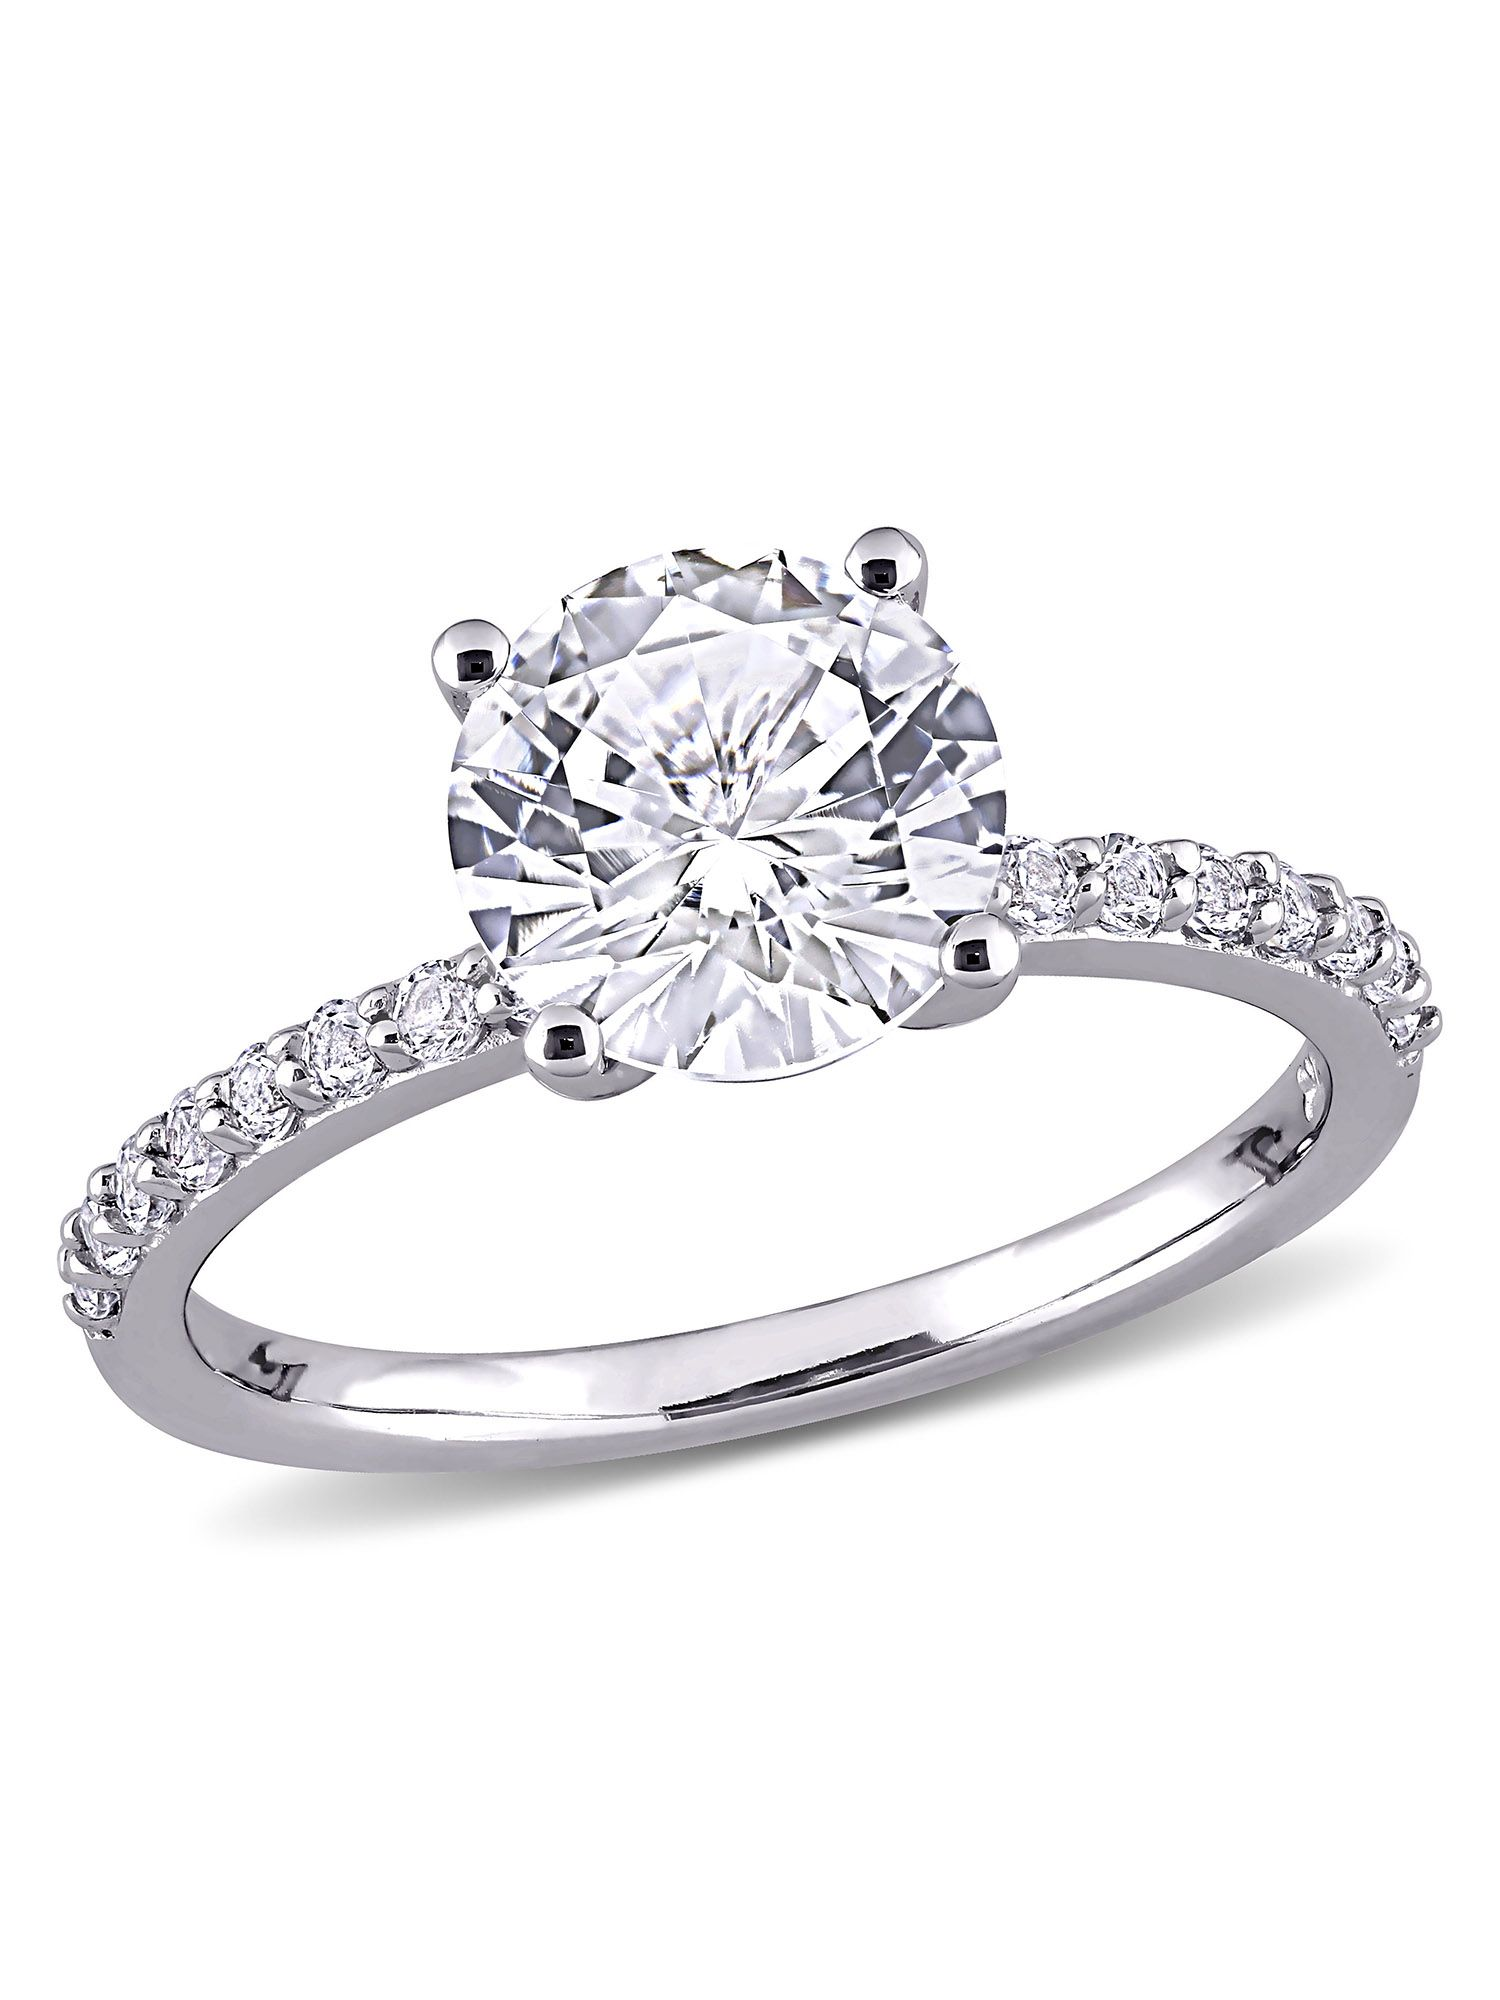 Miabella 2 3 4 Carat T G W Created White Sapphire 10k White Gold Engagement Ring Walmart Com In 2020 White Sapphire Engagement Ring Gemstone Engagement Rings White Gold Engagement Rings